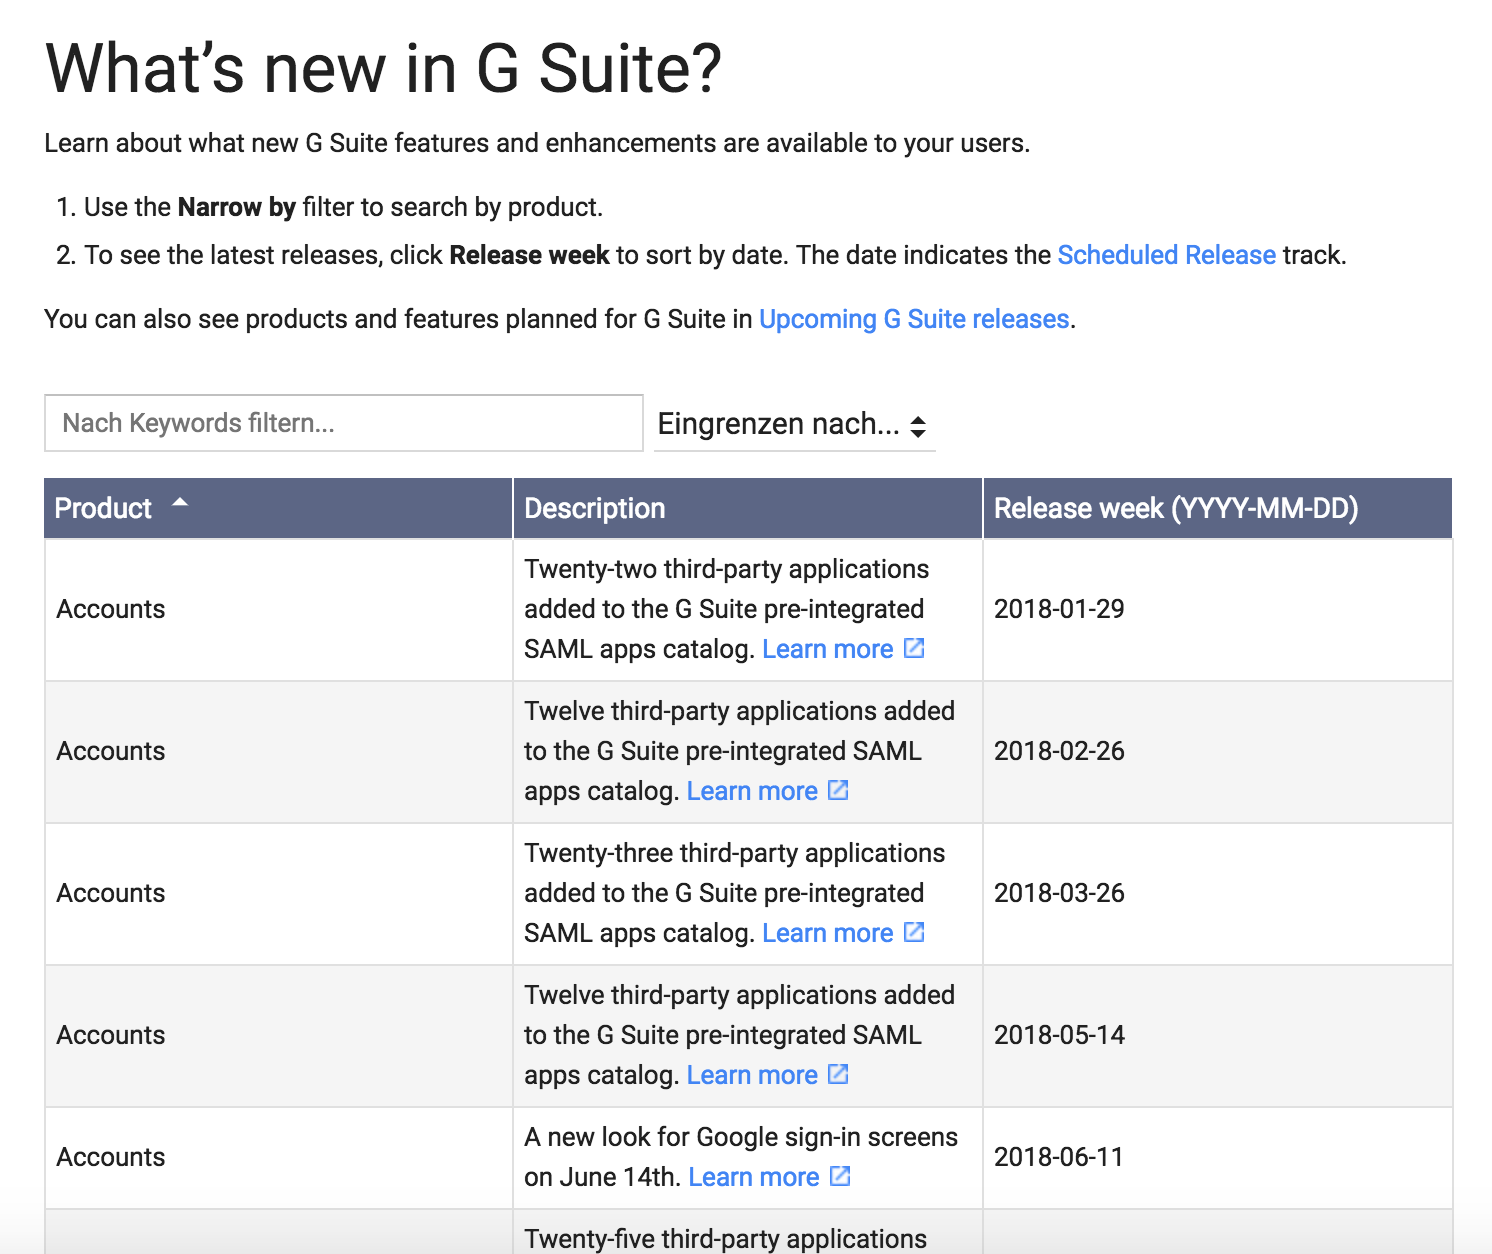 What's new in G Suite?